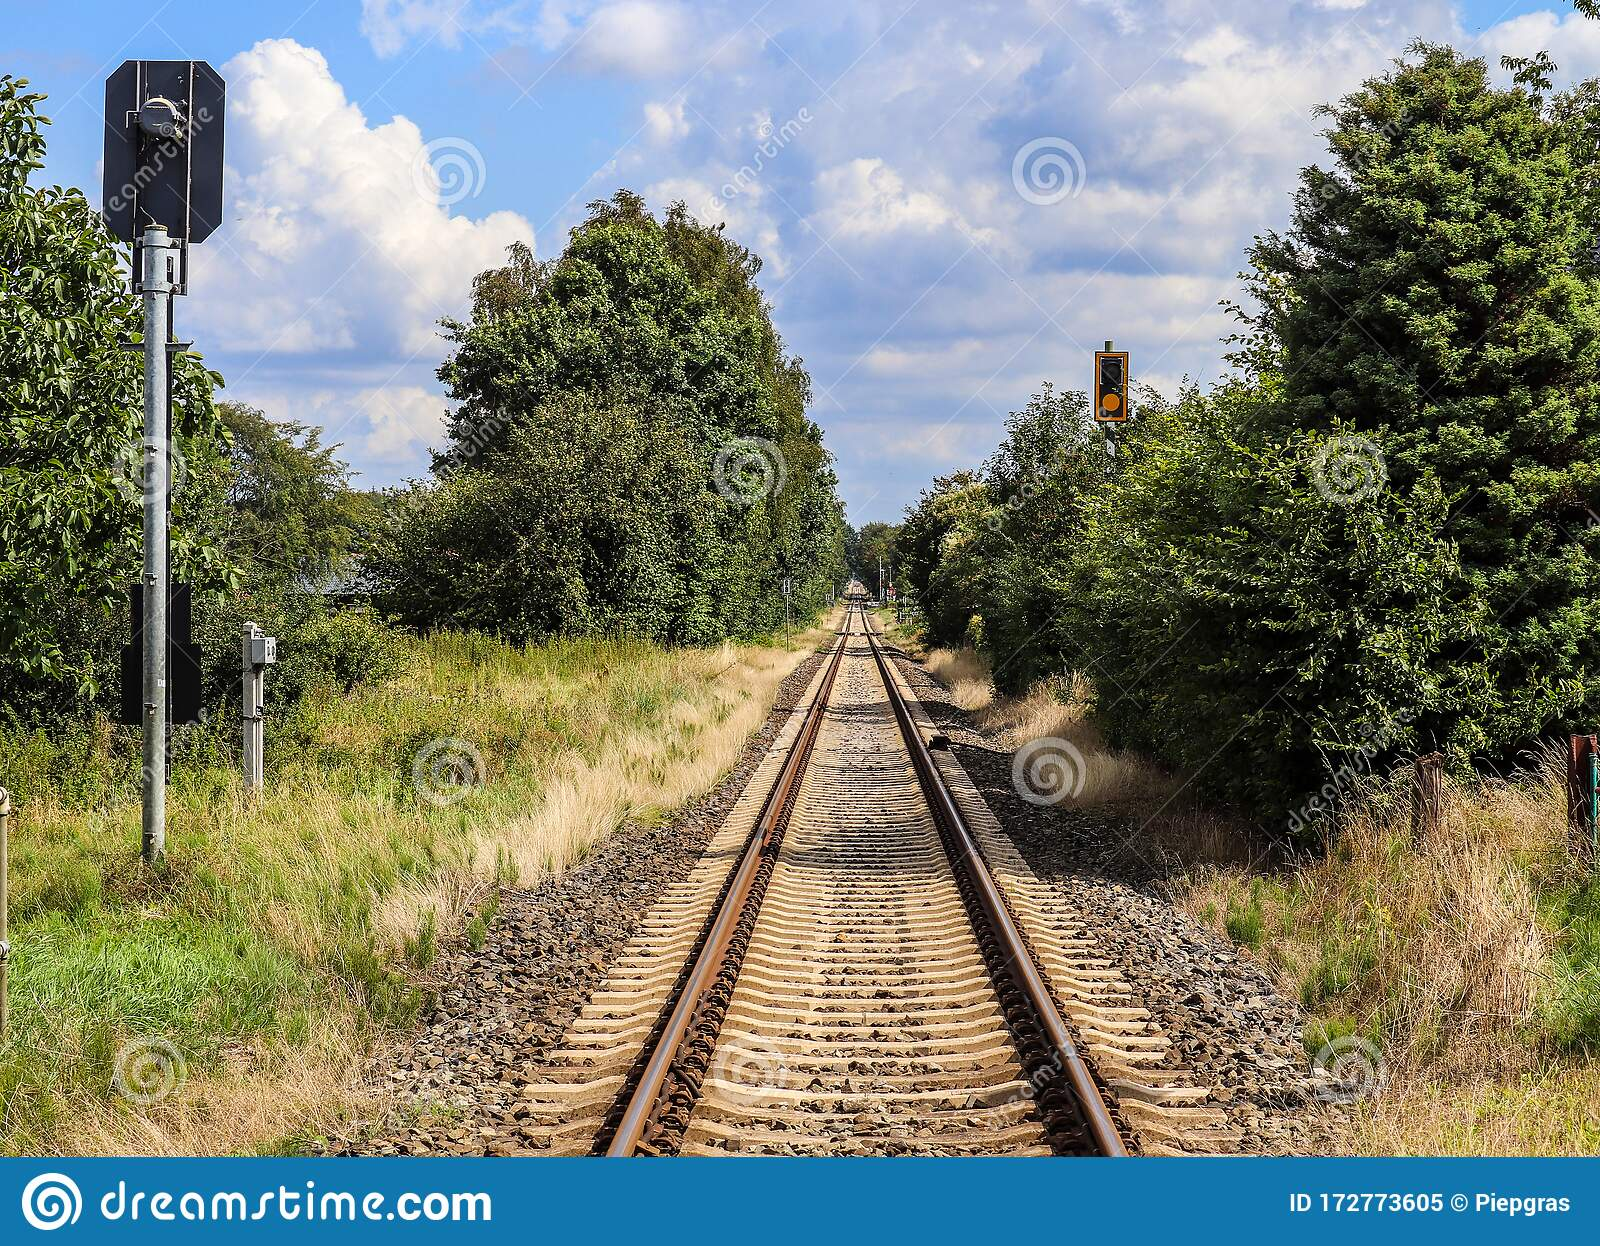 Old Abandened Train Tracks In Forest Stock Photograph